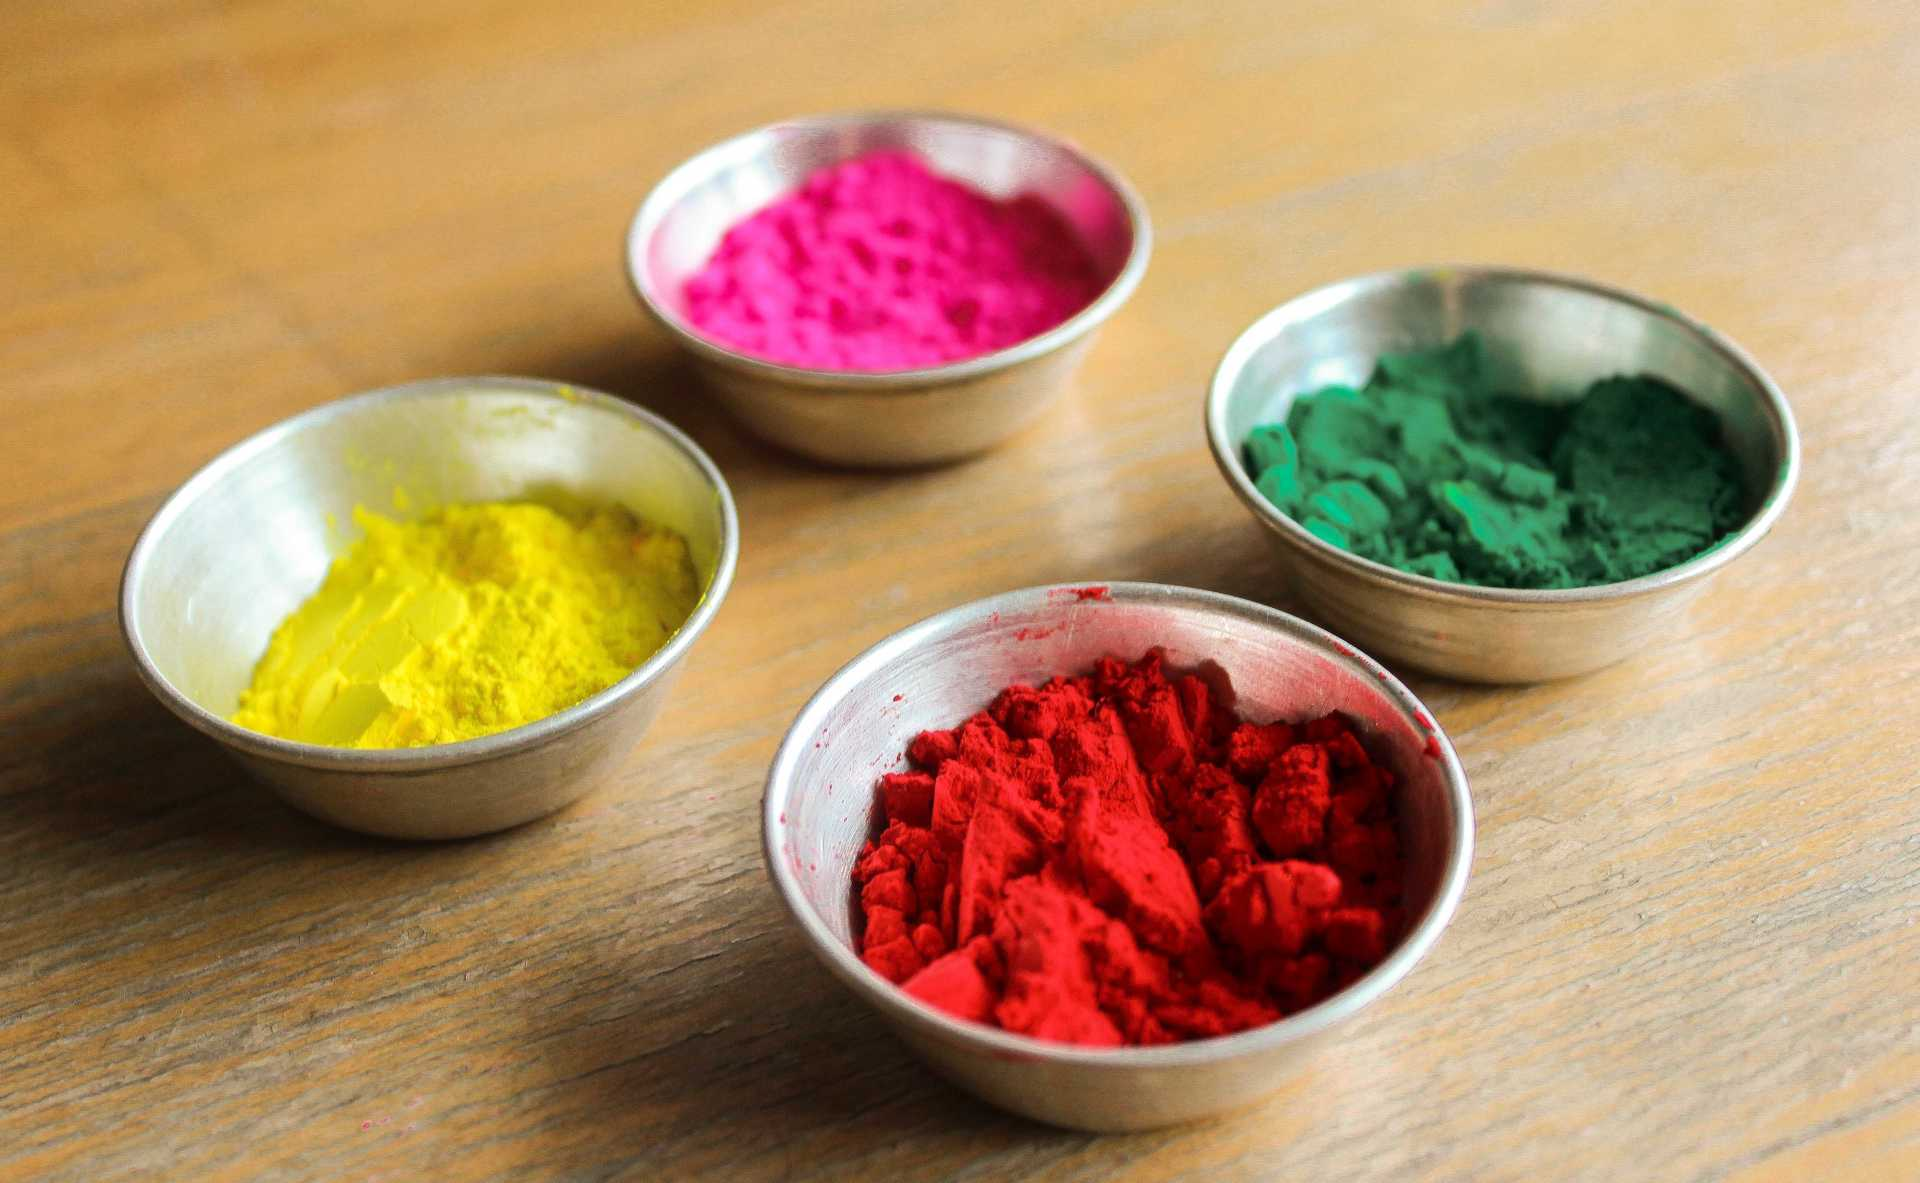 How to prepare for Holi image